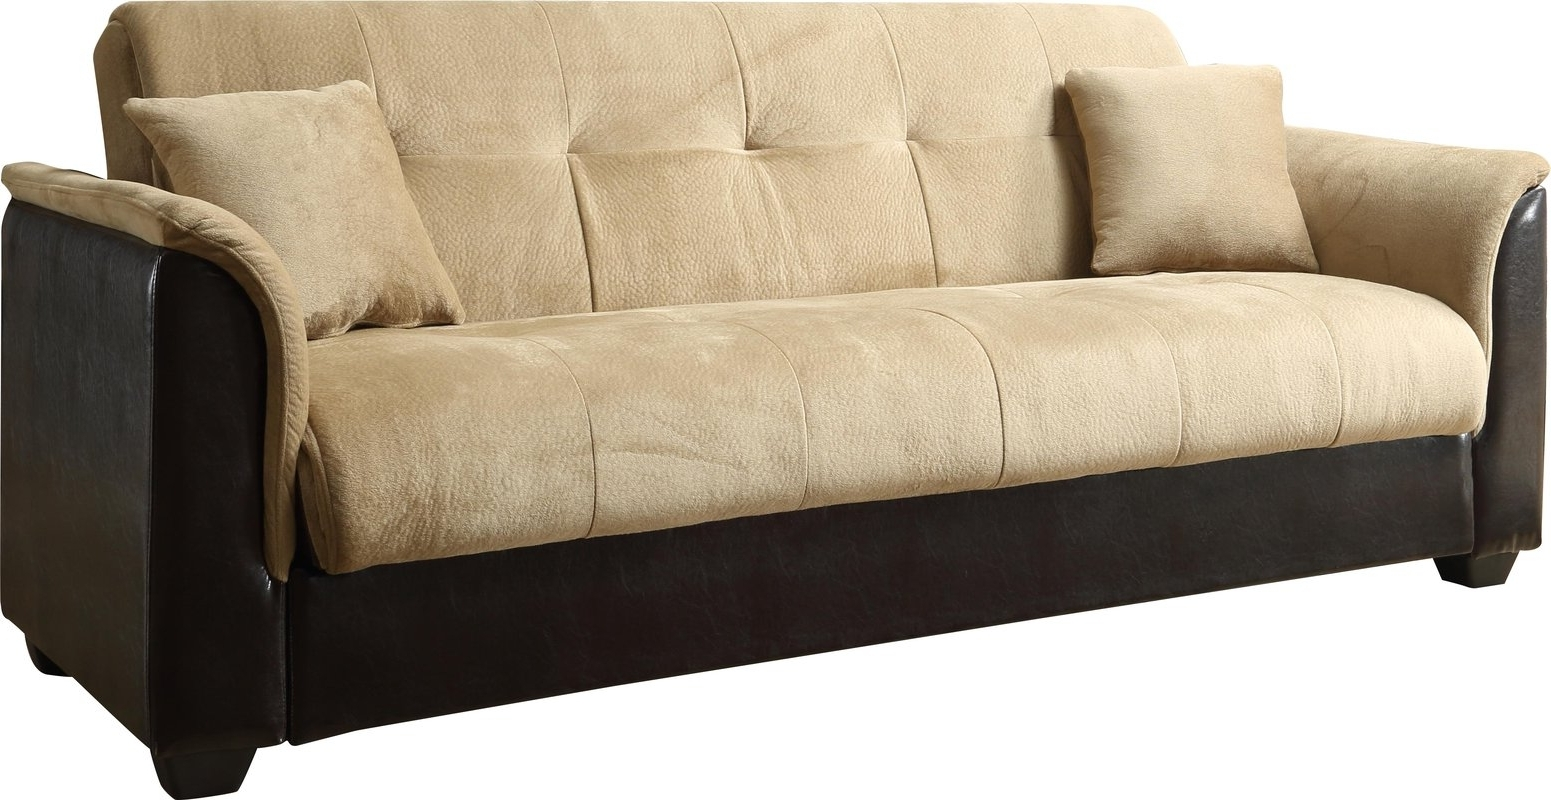 Wayfair For Convertible Sofas (View 18 of 20)